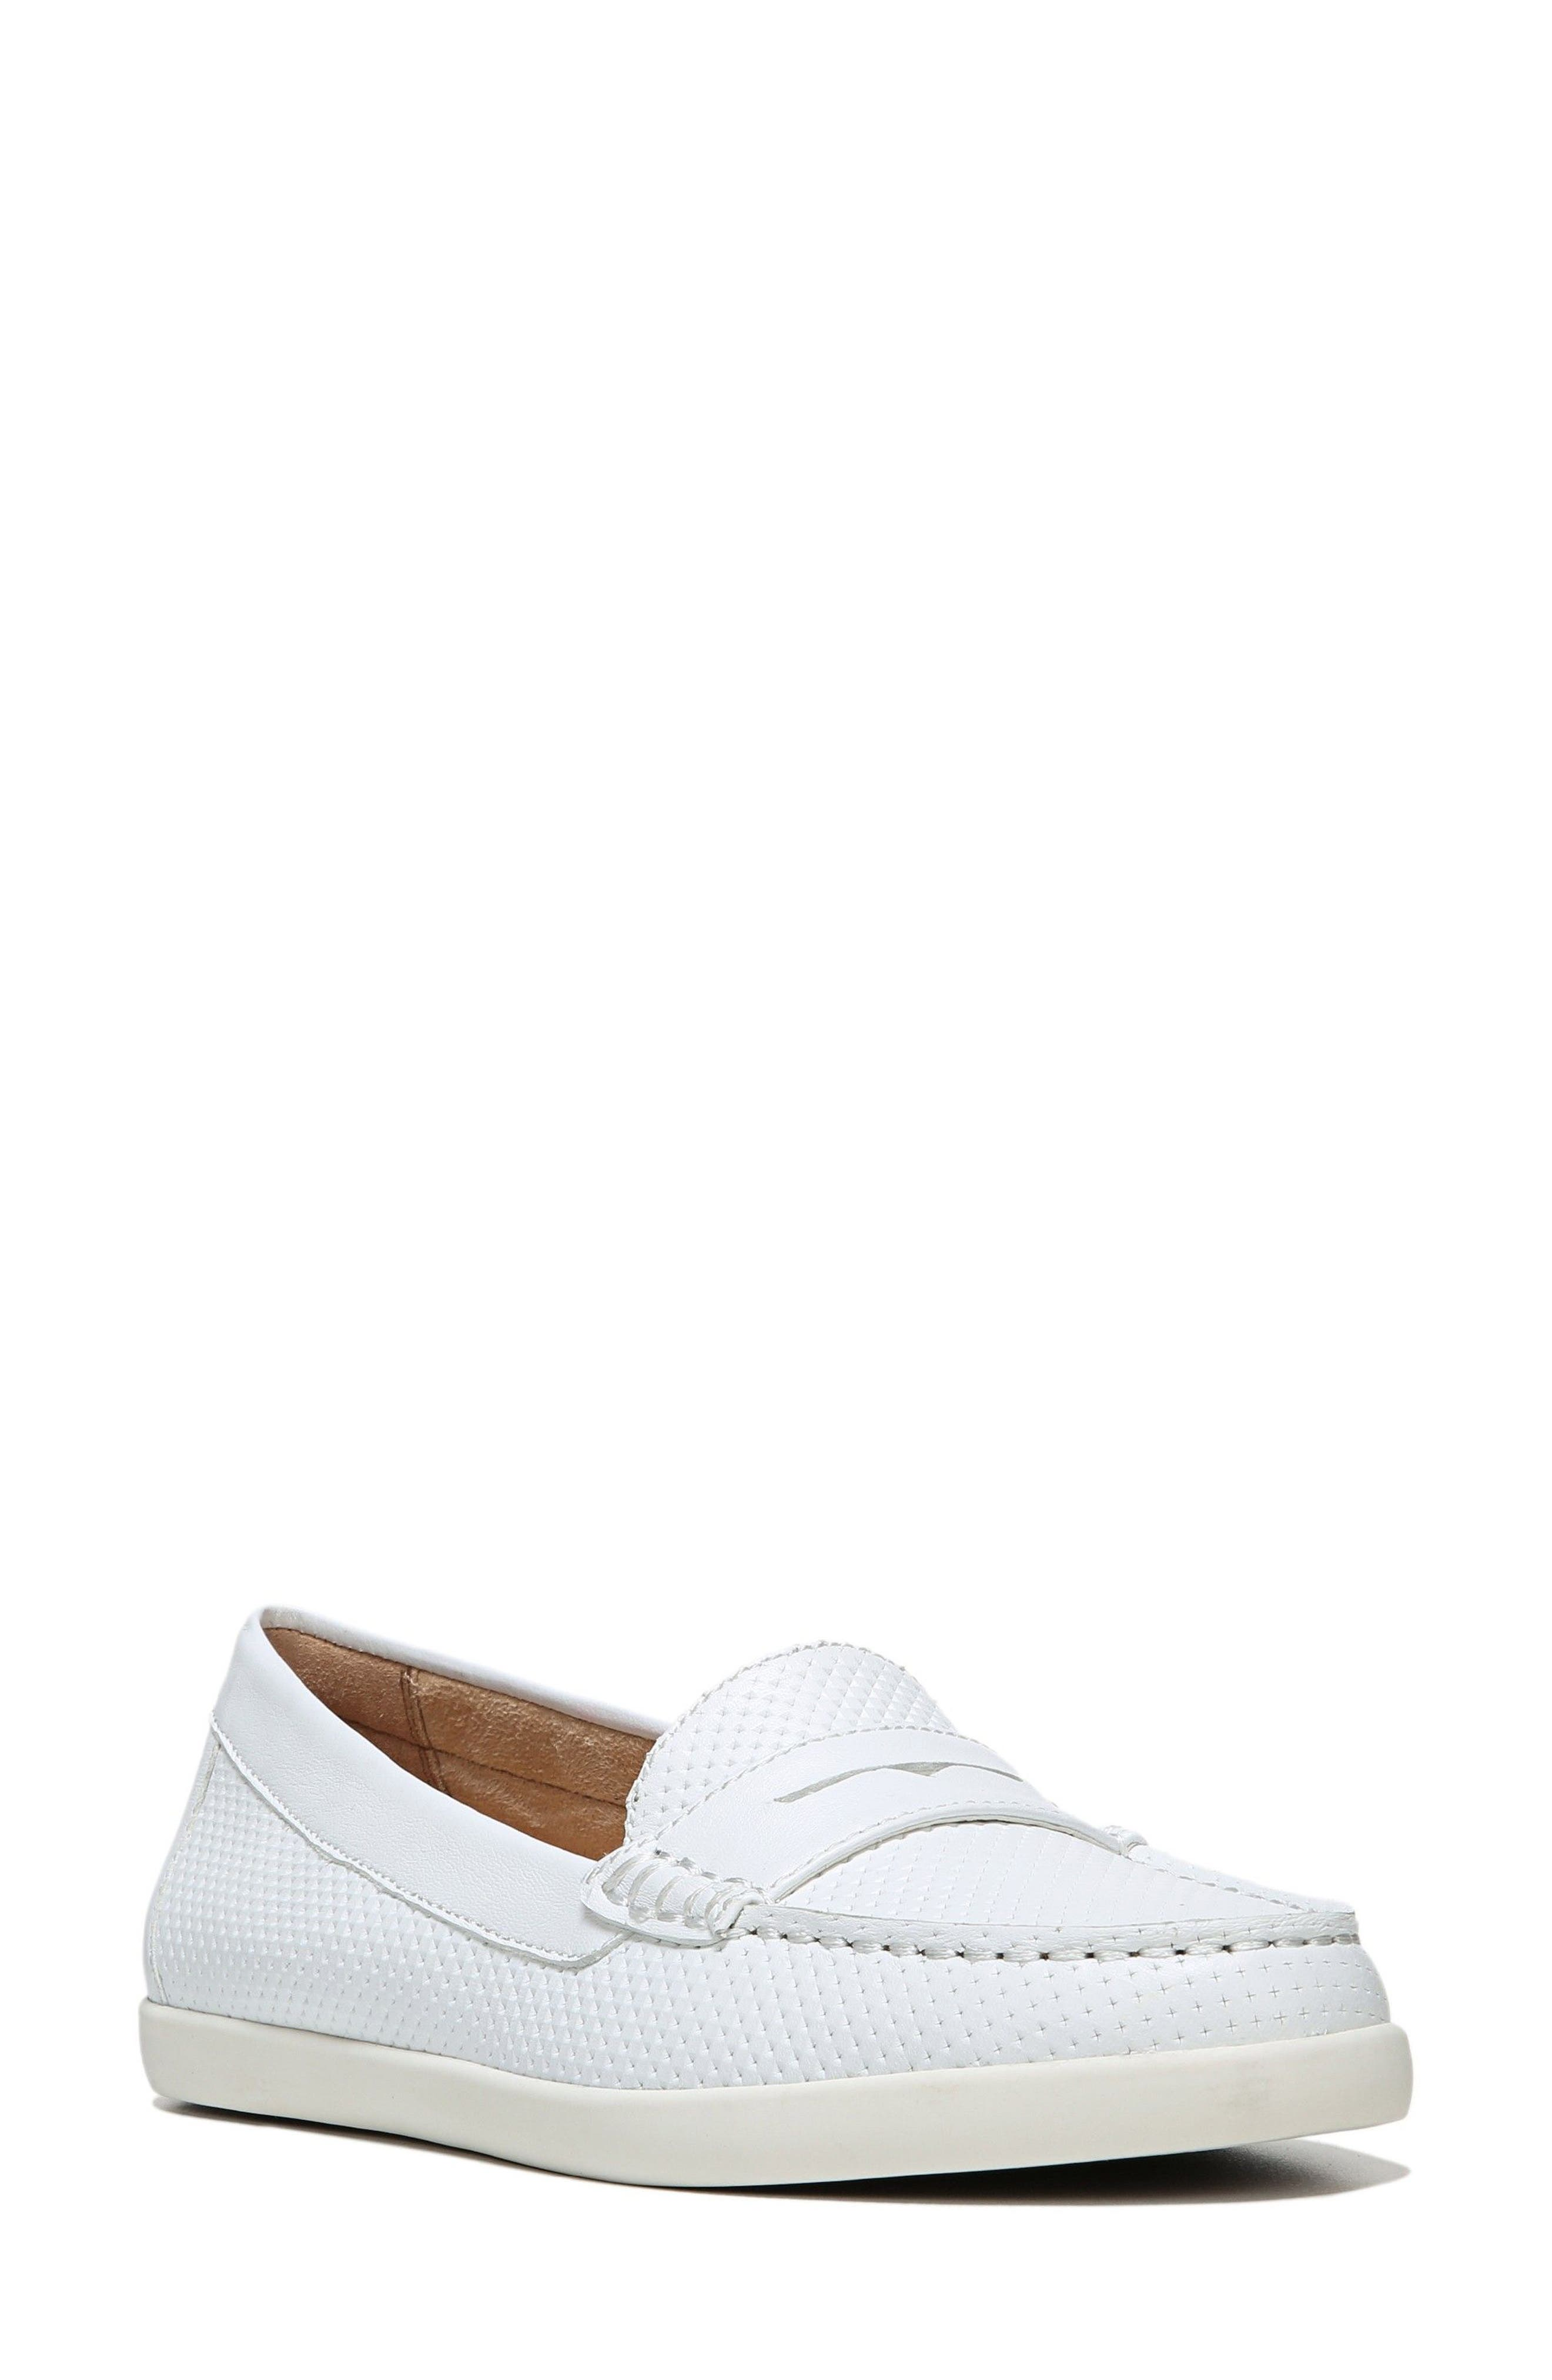 Gwen Slip-On Sneaker,                         Main,                         color, WHITE LEATHER